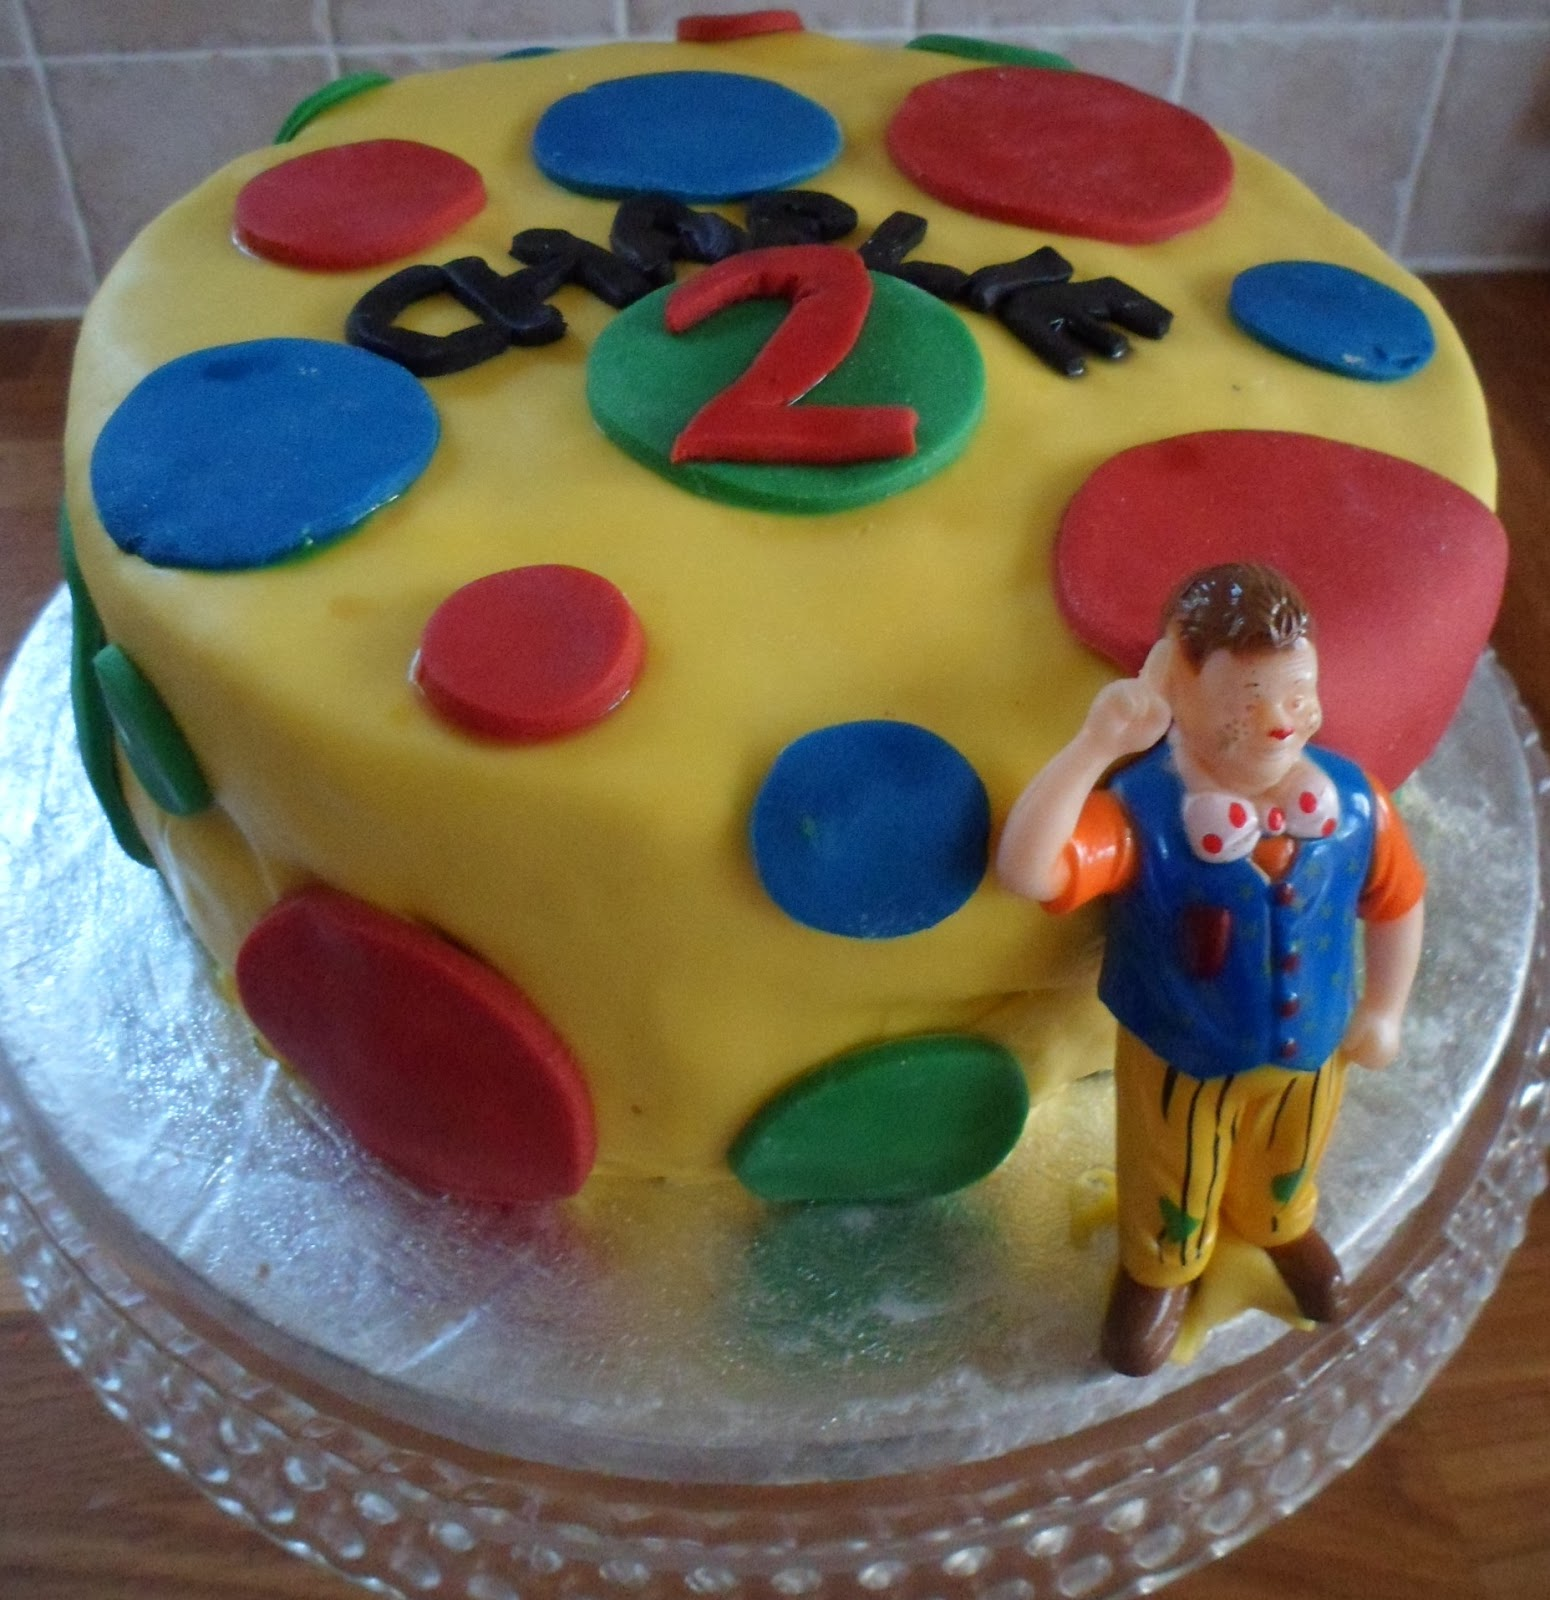 Cobble & Gobble: Mr Tumble\'s Spotty Birthday Cake (inside and out!)